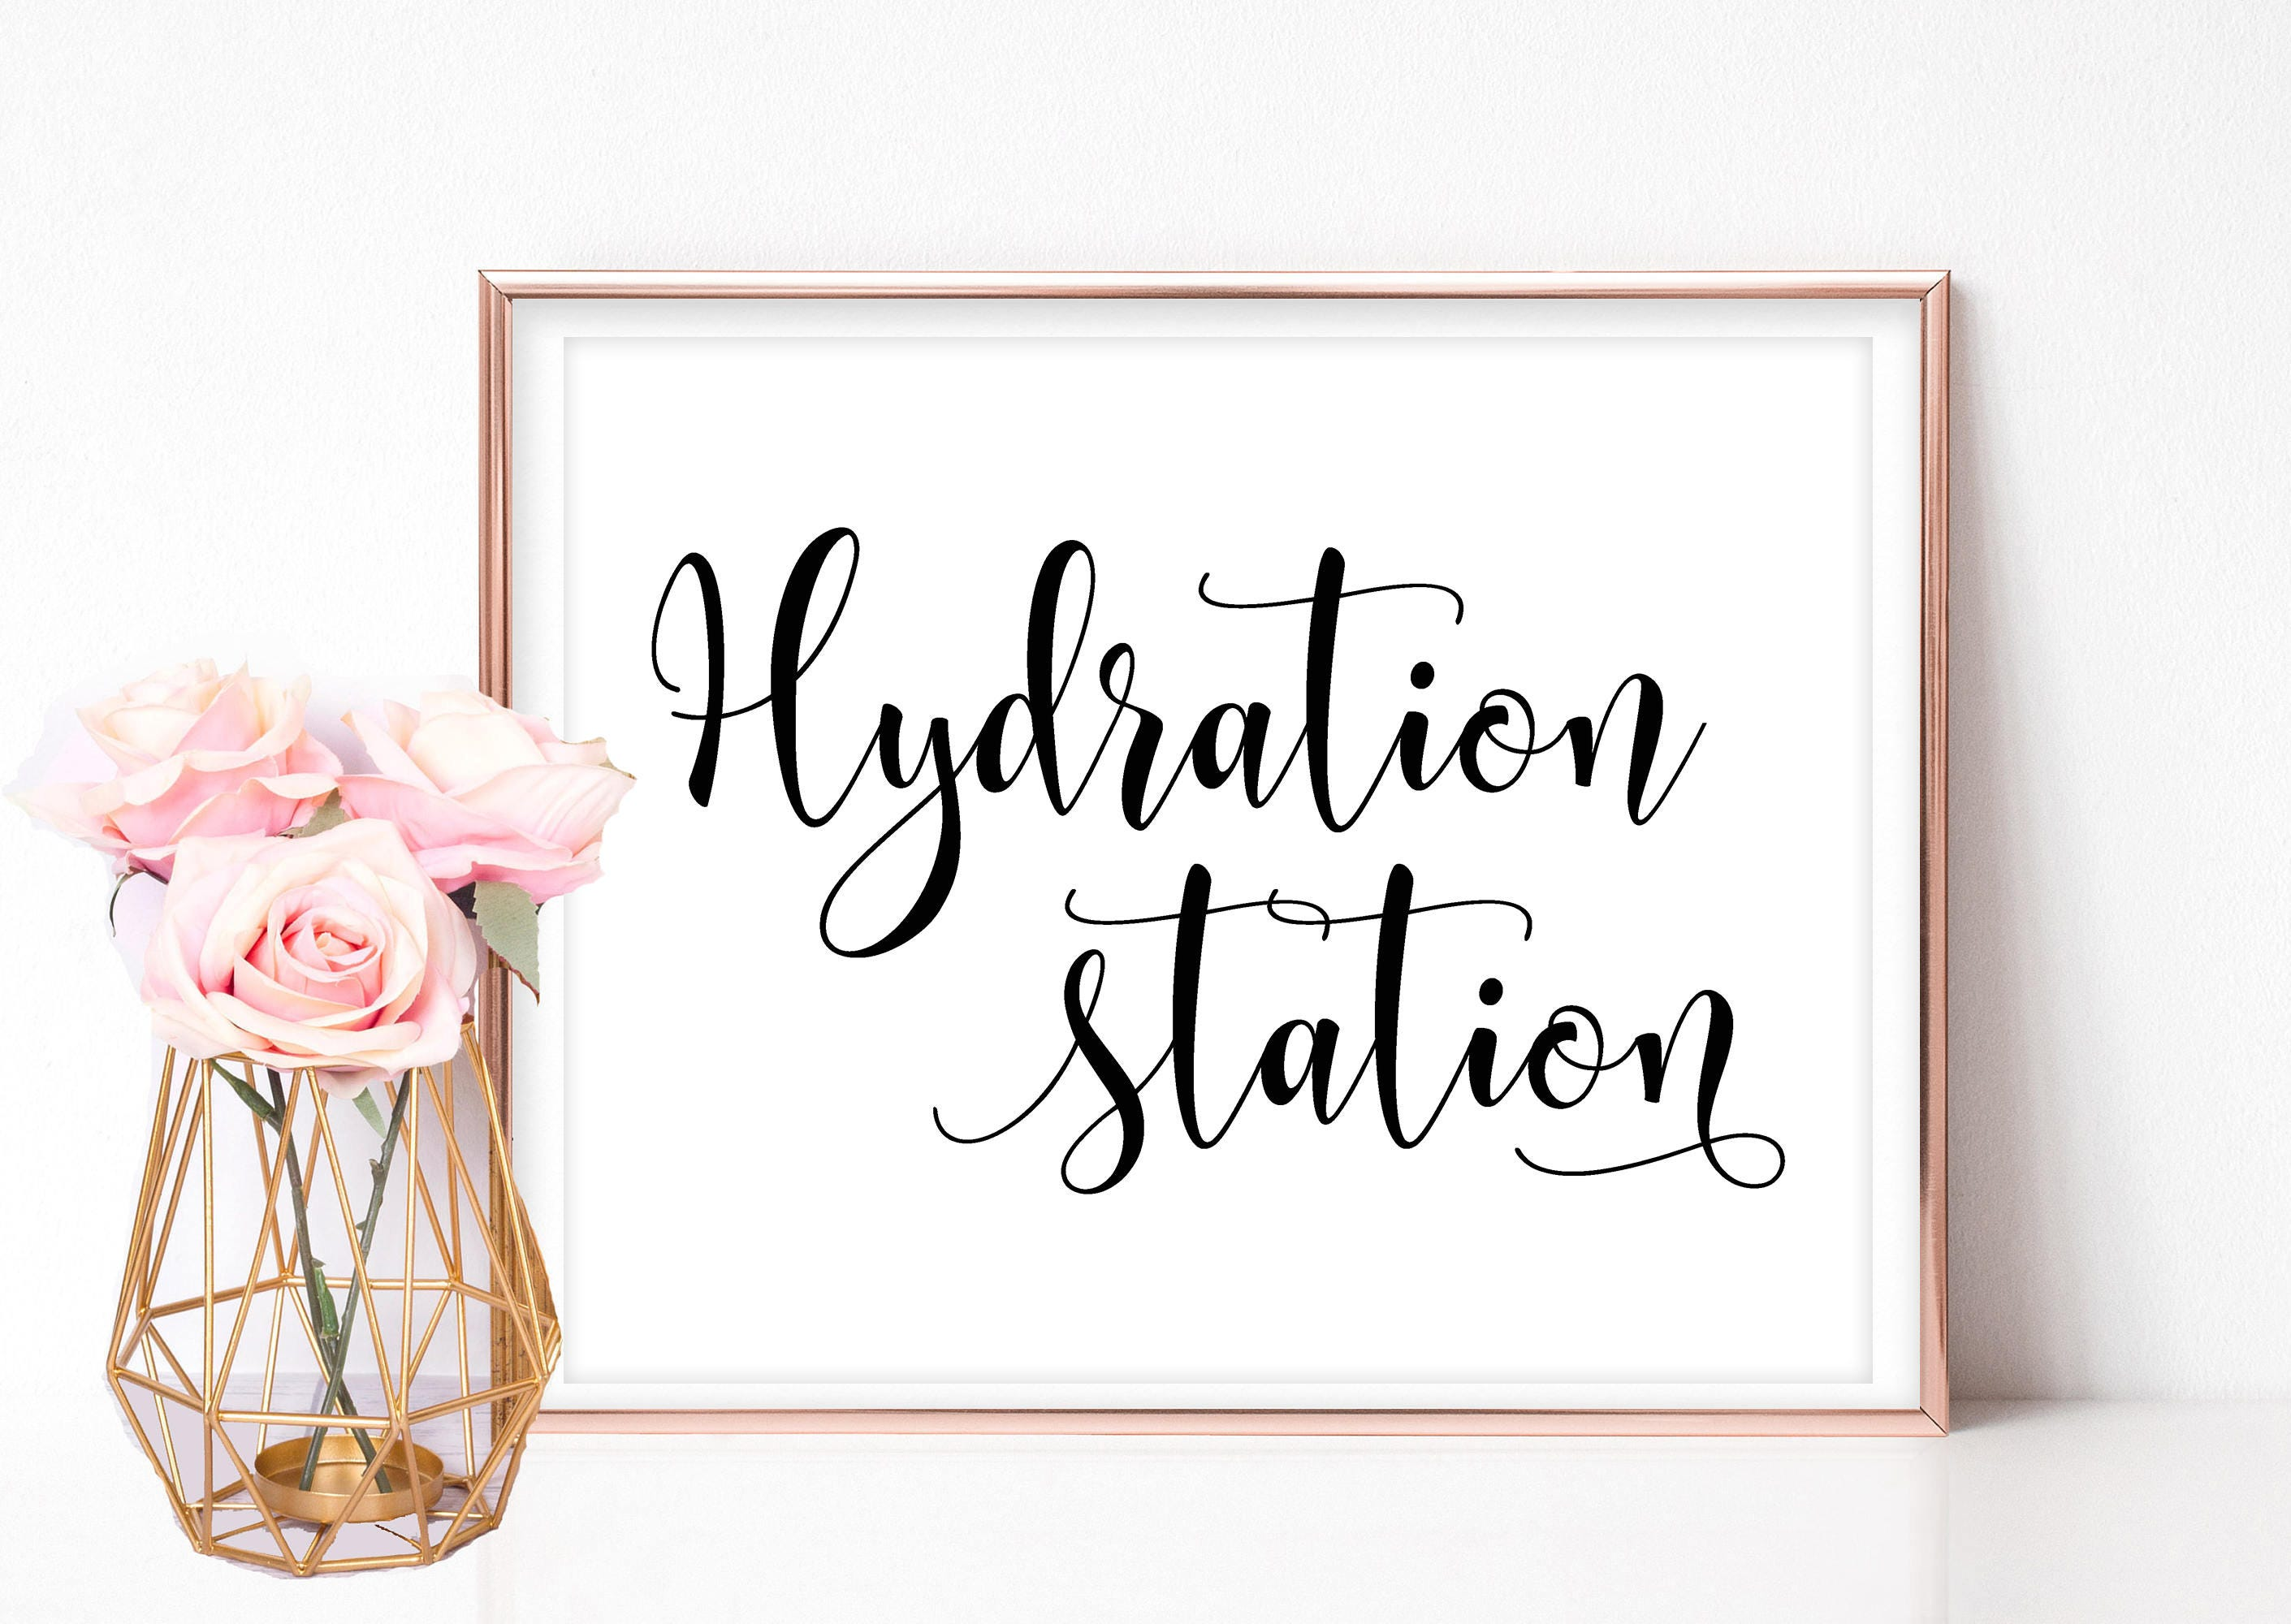 Hydration Station Sign Template Printable Wedding Bar Signs Party Beverages Table Decoration Signage 4x6 5x7 8x10